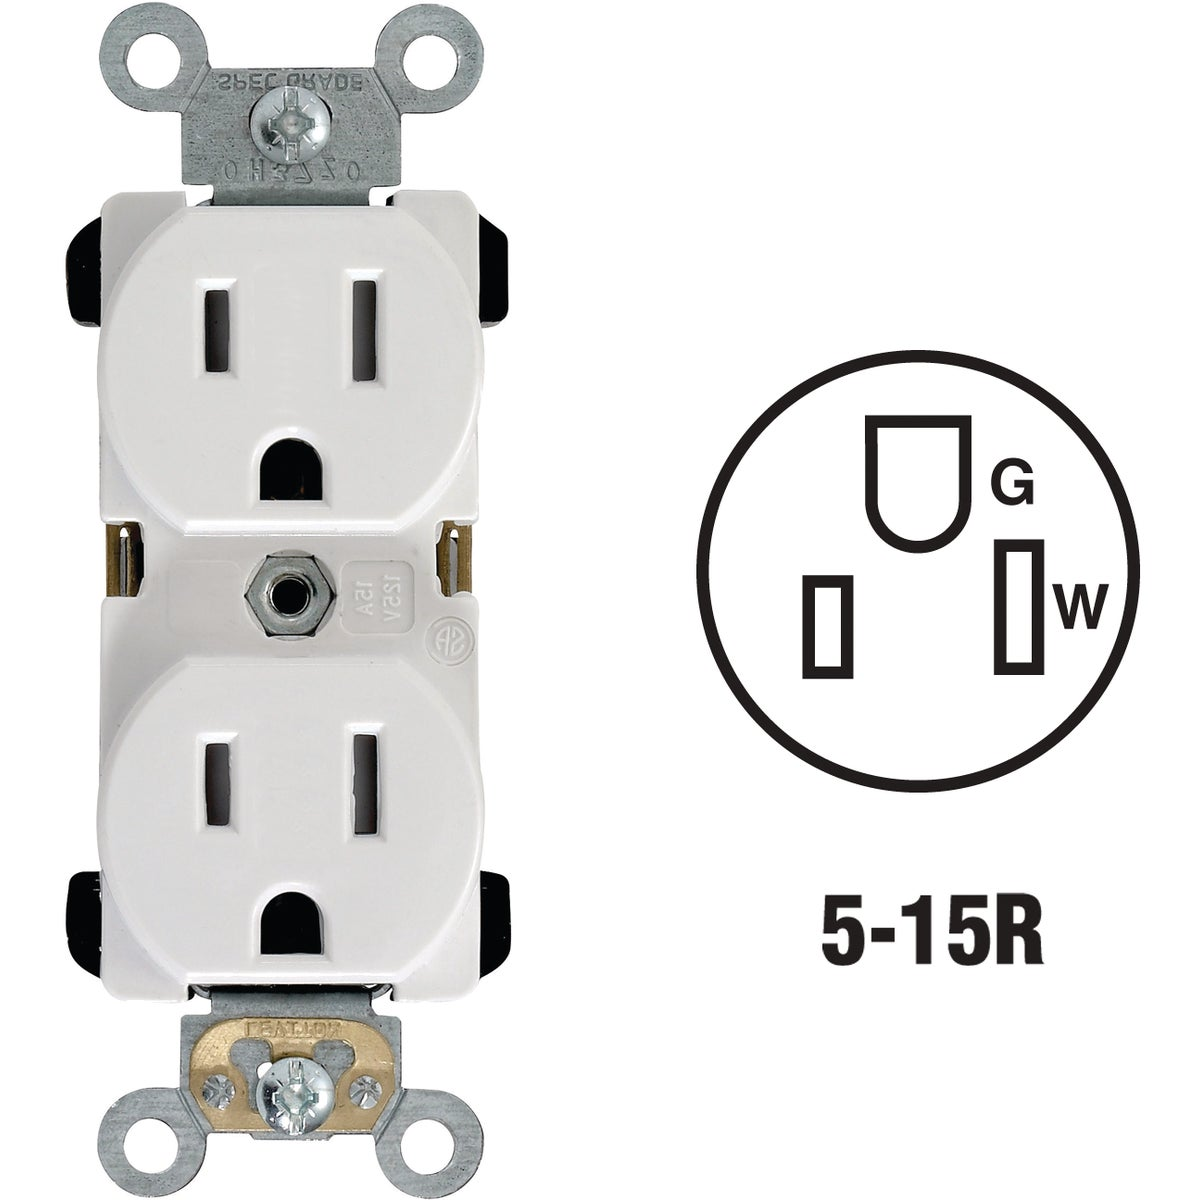 15A WHITE TAMP RES RECEP - S12-TBR15-00W by Leviton Mfg Co